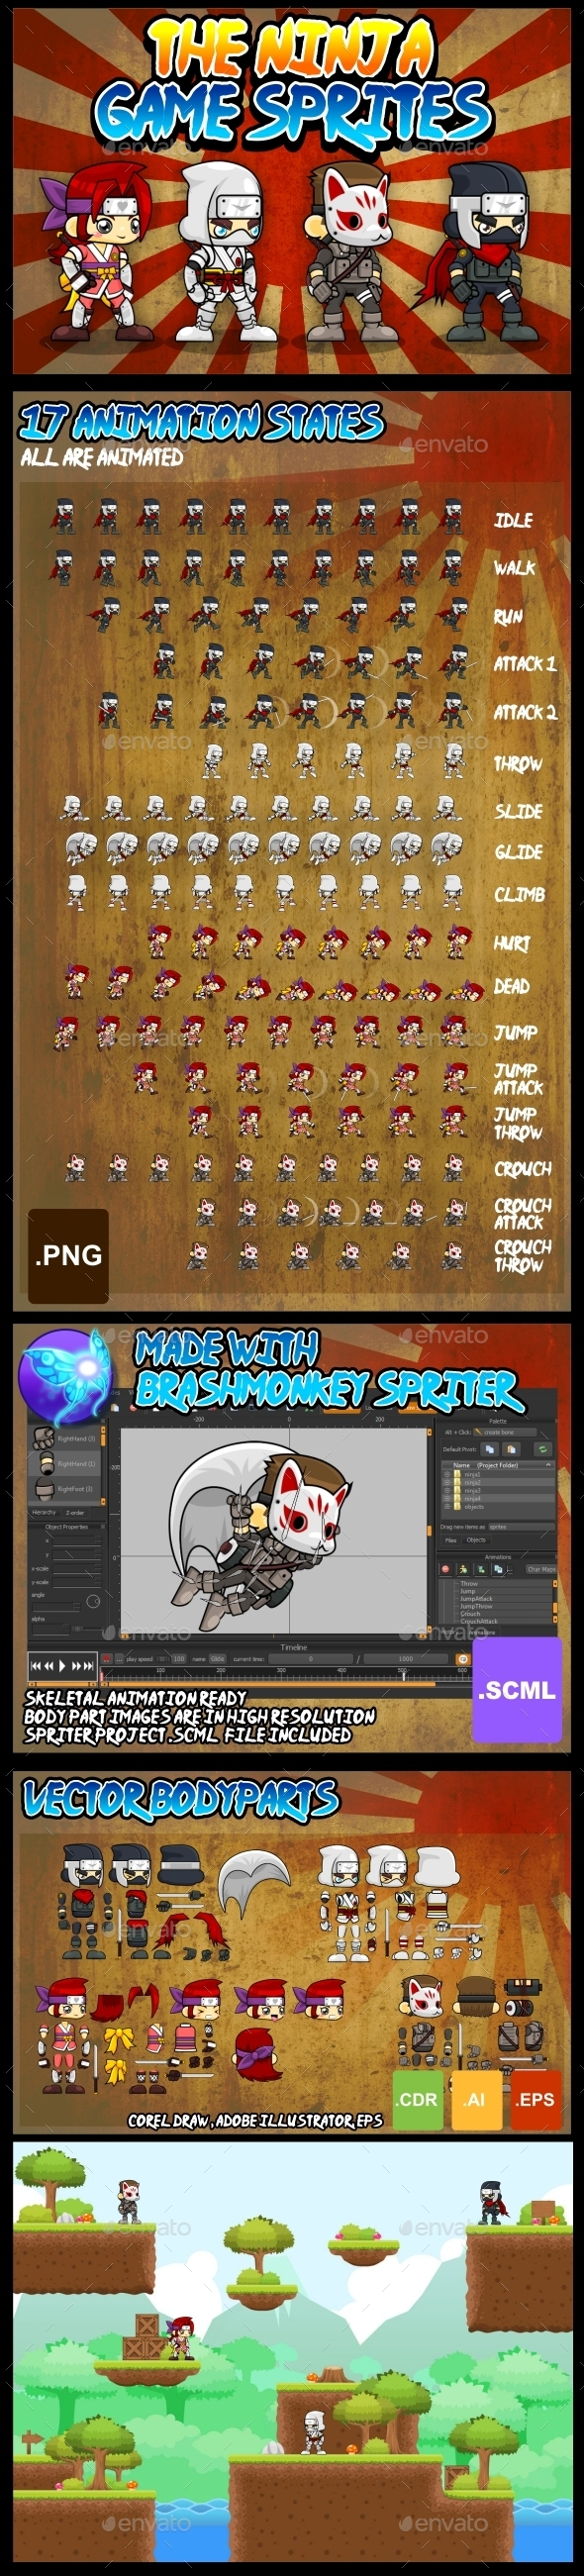 GraphicRiver The Ninja Game Sprites 10786047